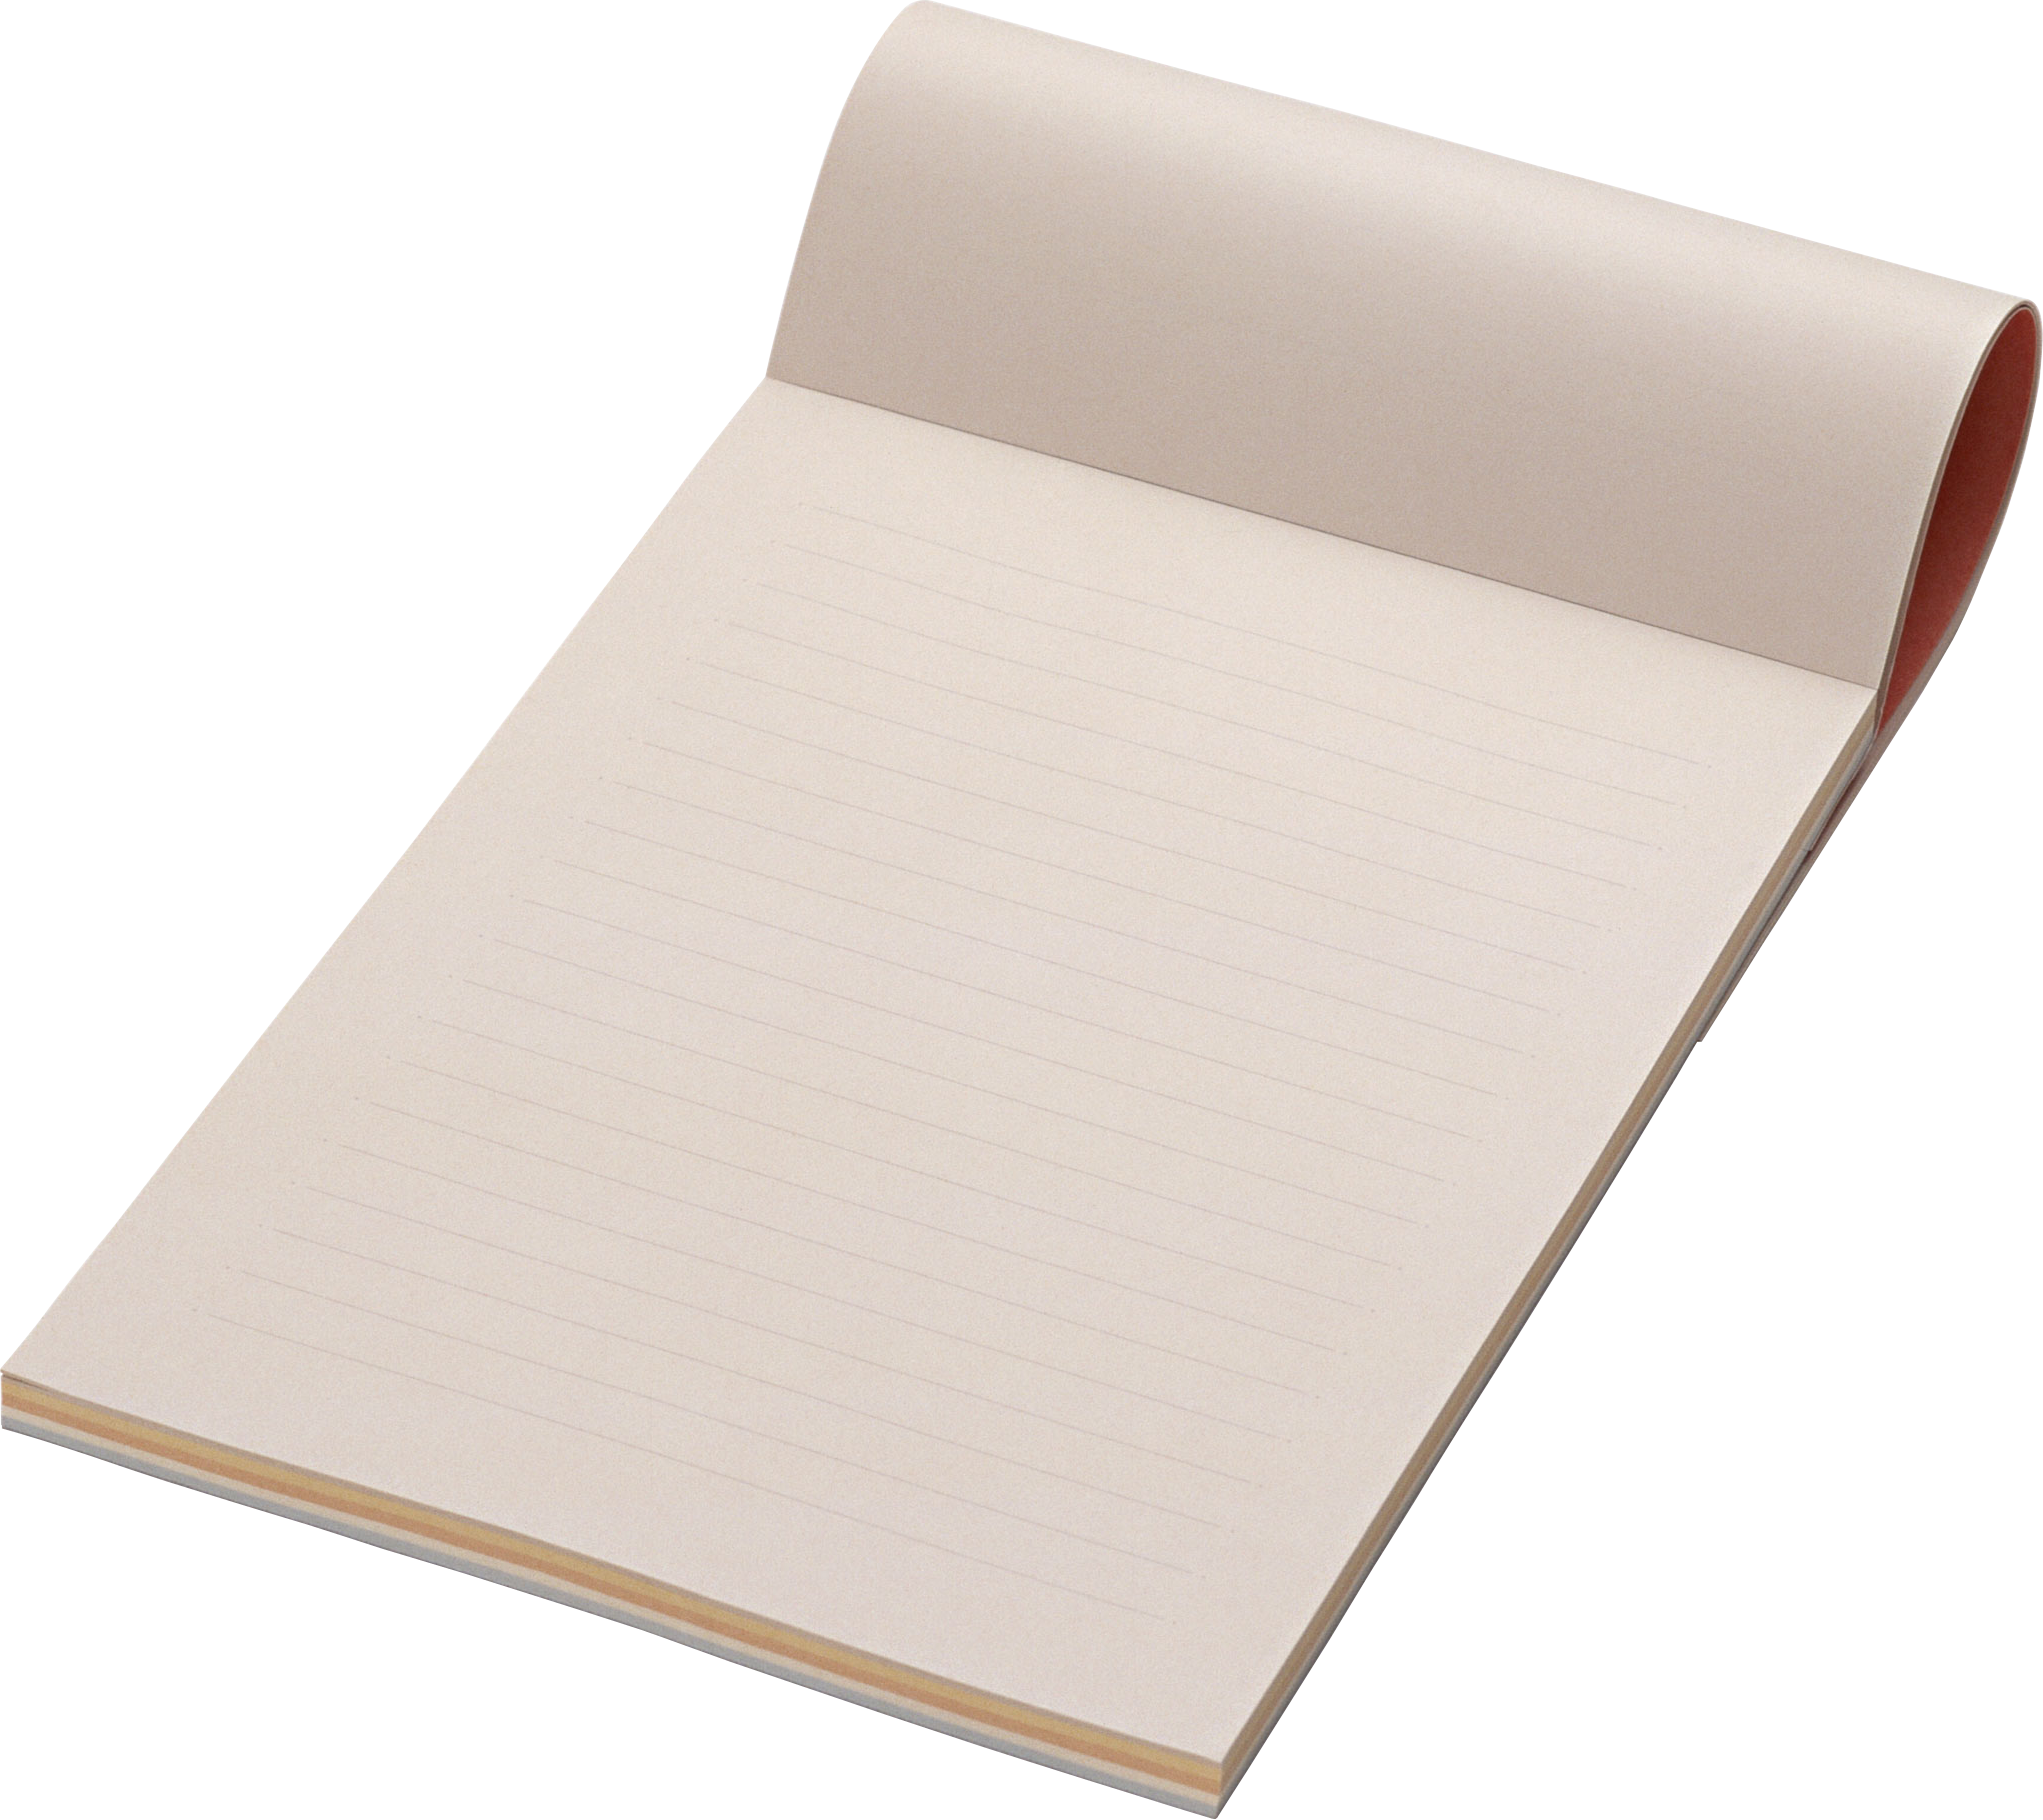 uploads notebook notebook PNG19215 3